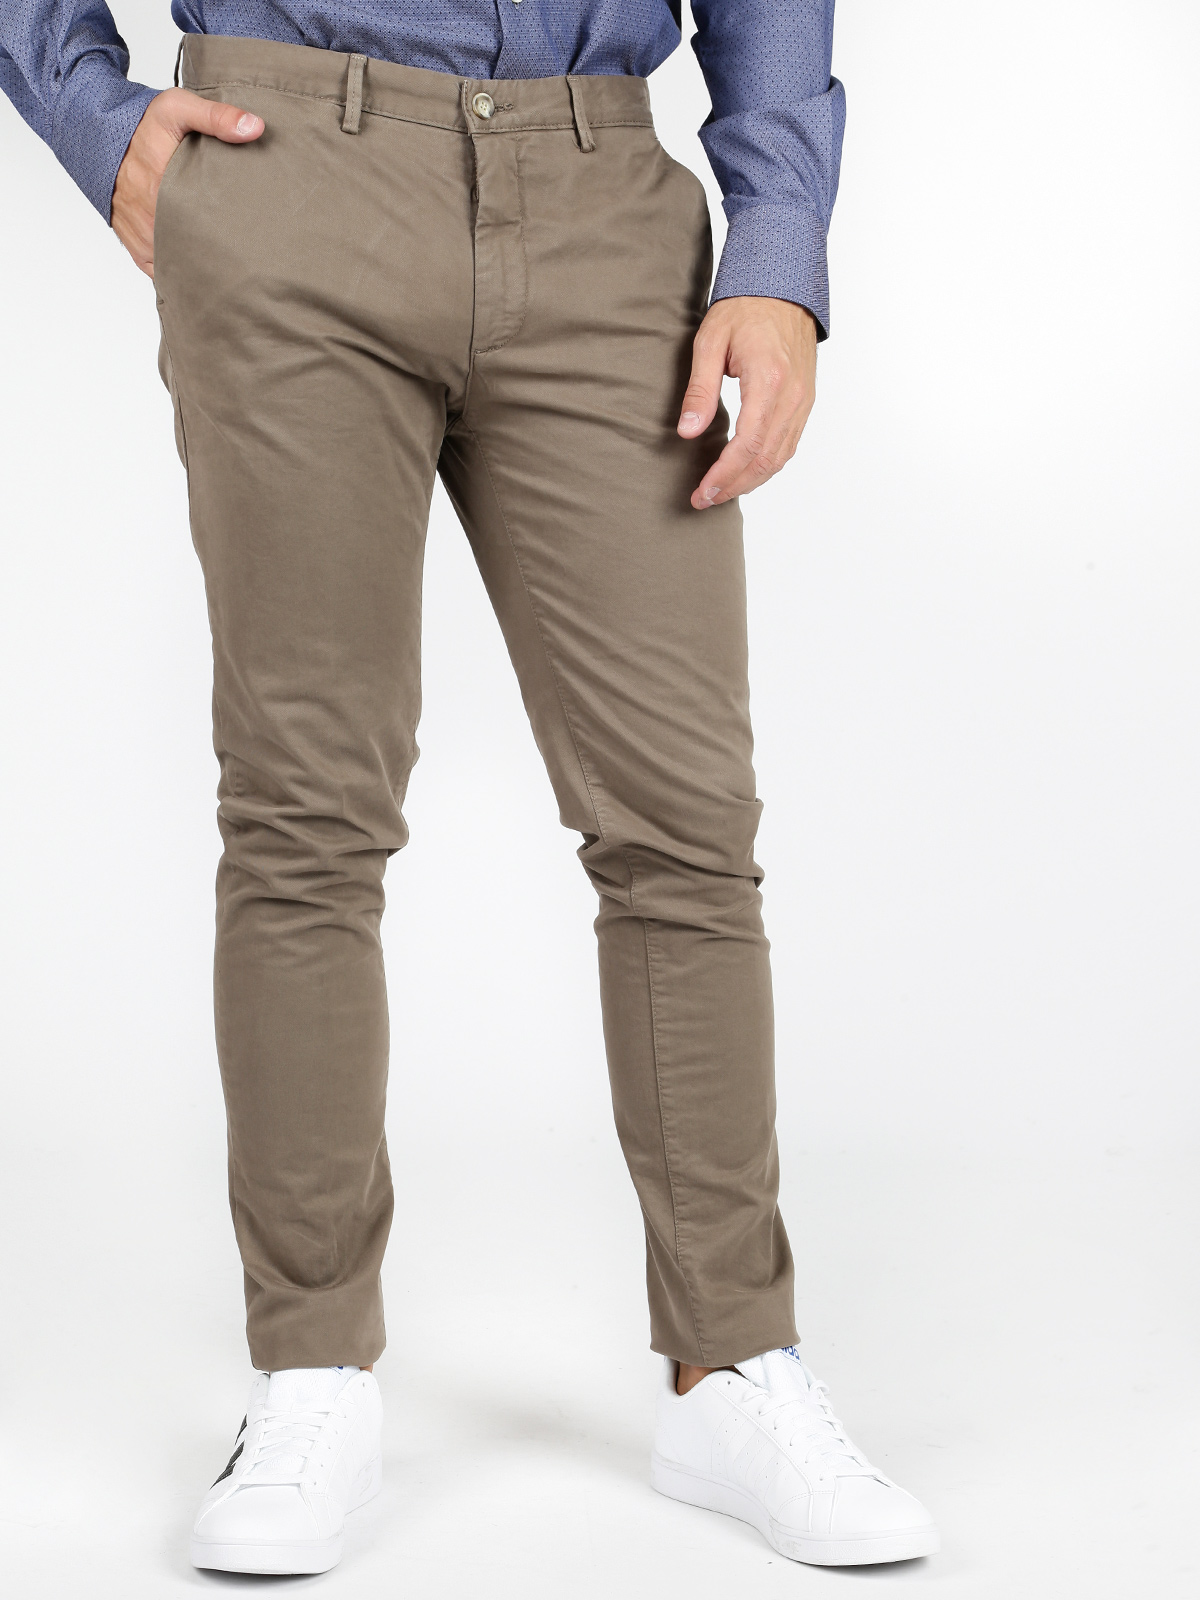 Pants Slim Fit Cotton-mud